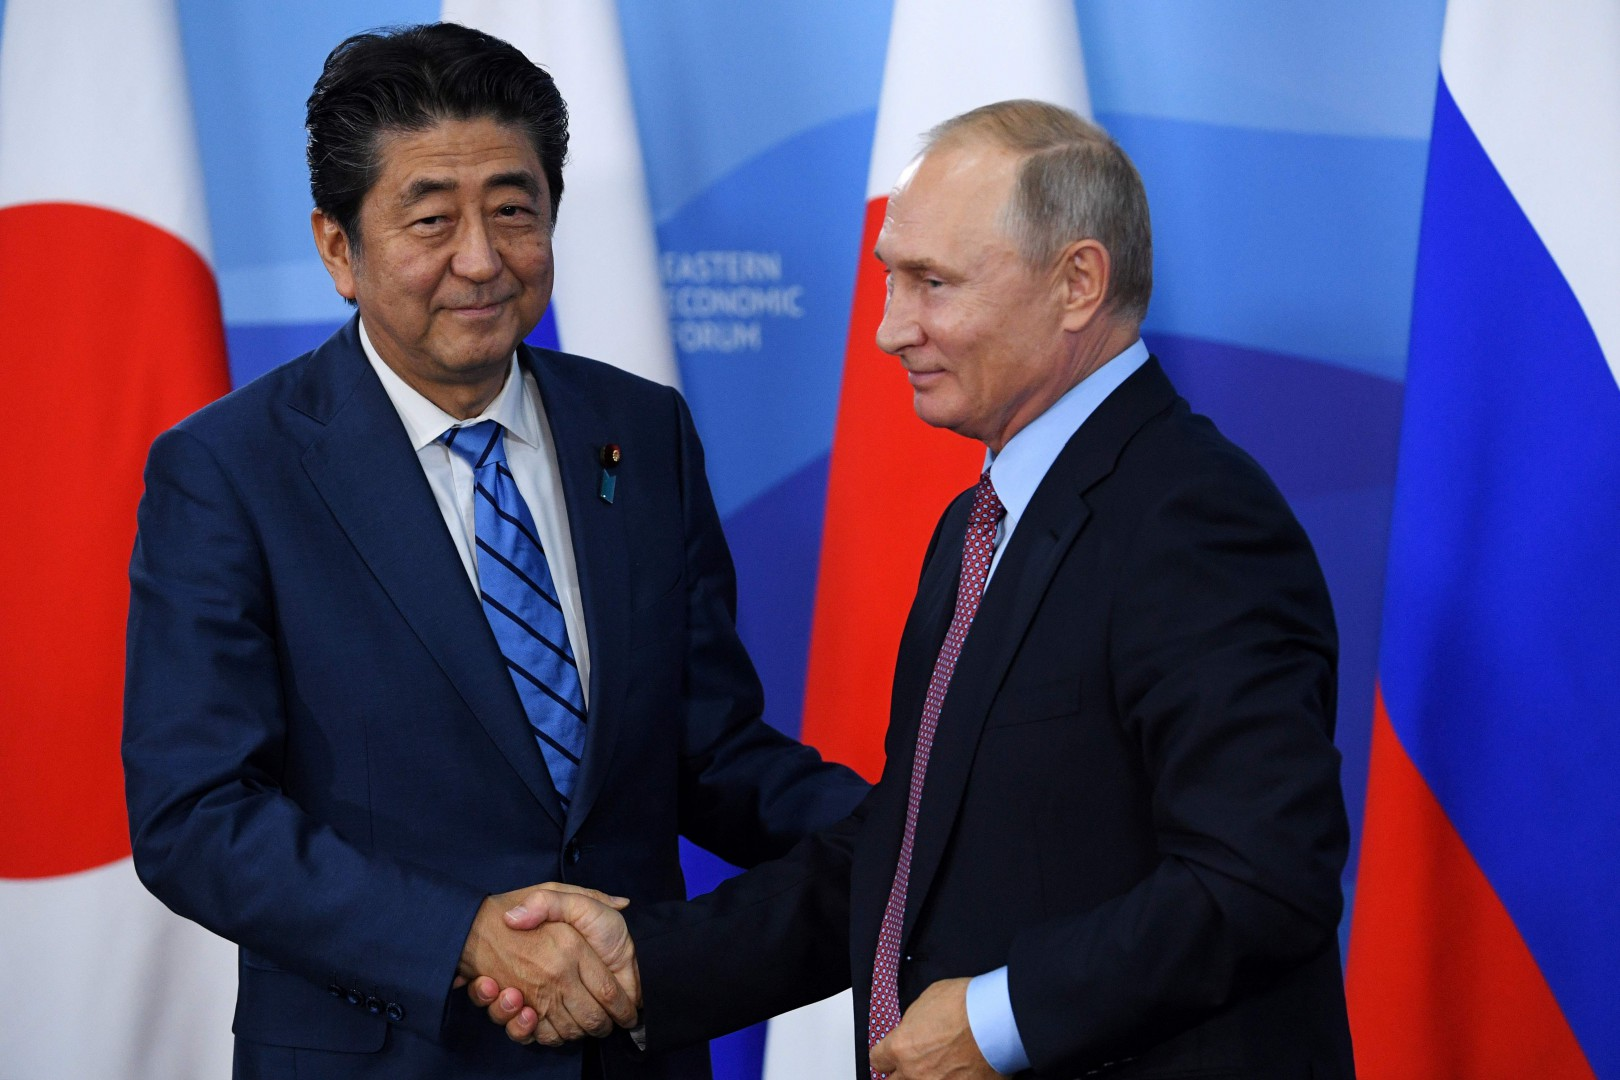 Russian President Vladimir Putin (R) shakes hands with Japanese Prime Minister Shinzo Abe after a press conference following their meeting in Vladivostok on September 10, 2018. (Photo by Kirill KUDRYAVTSEV / AFP)